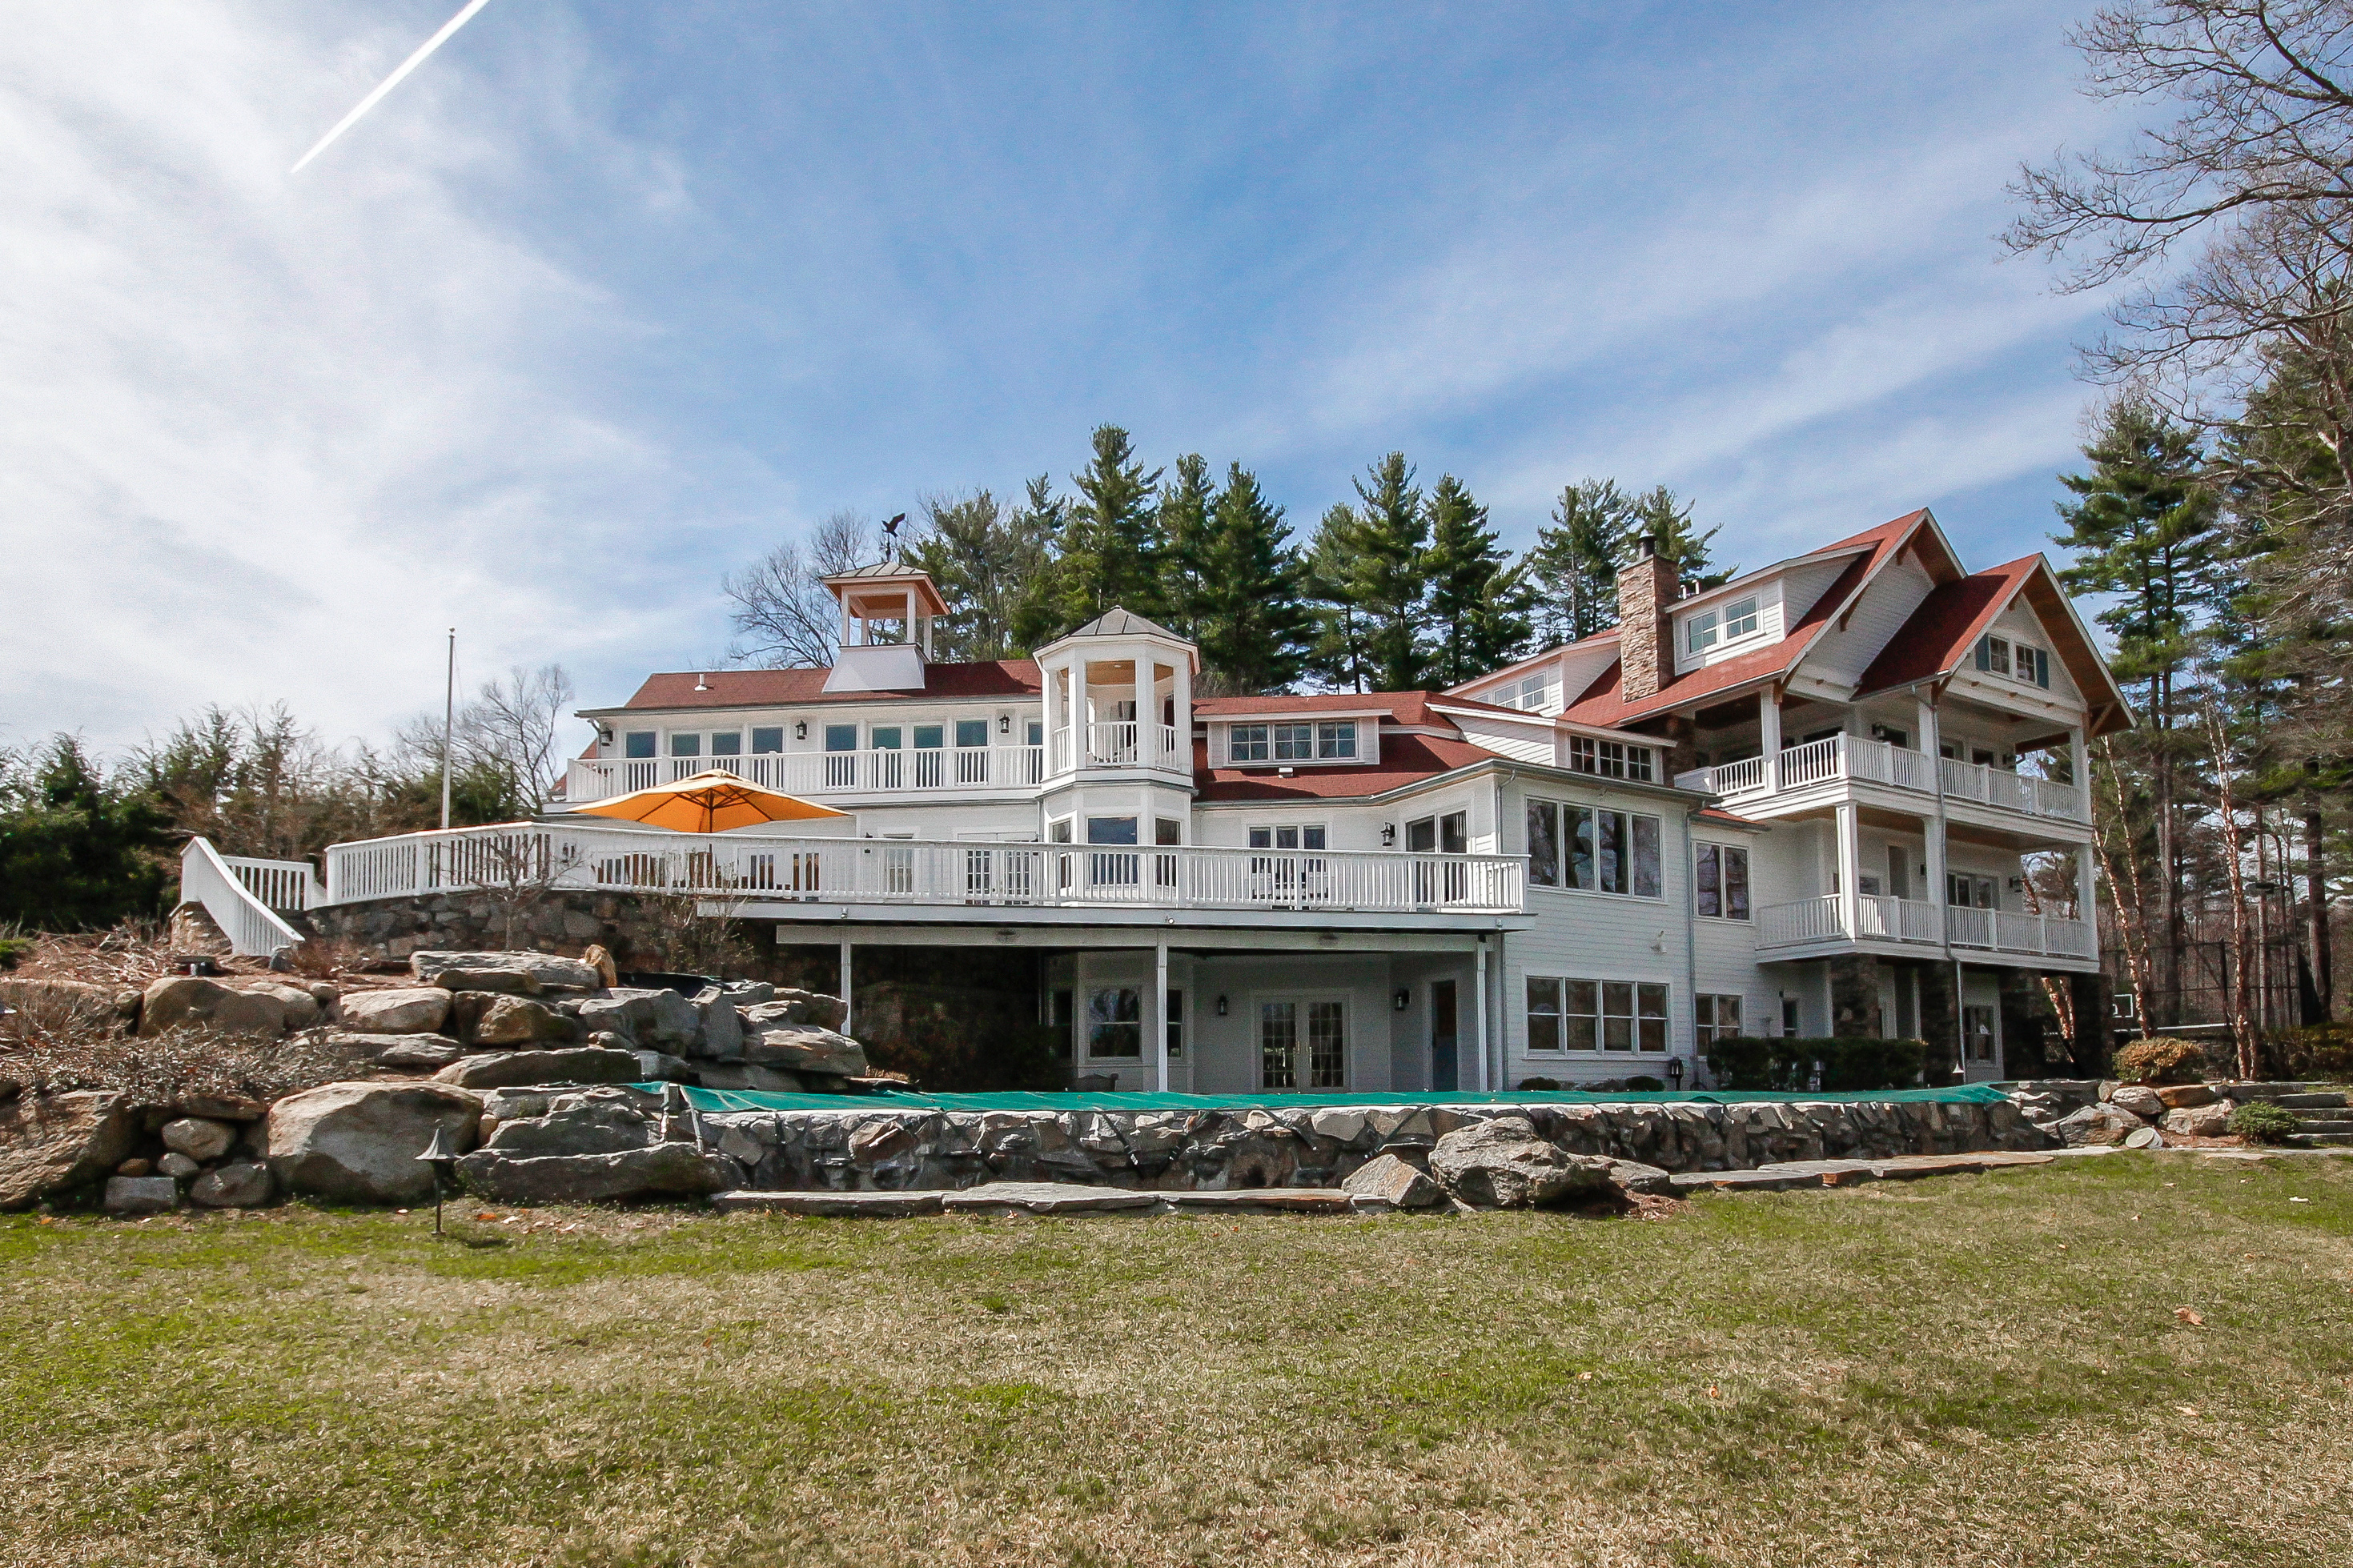 Casa Unifamiliar por un Venta en The Pointe At Barkwood Falls 28 Deerfield Road Brookfield, Connecticut 06804 Estados Unidos